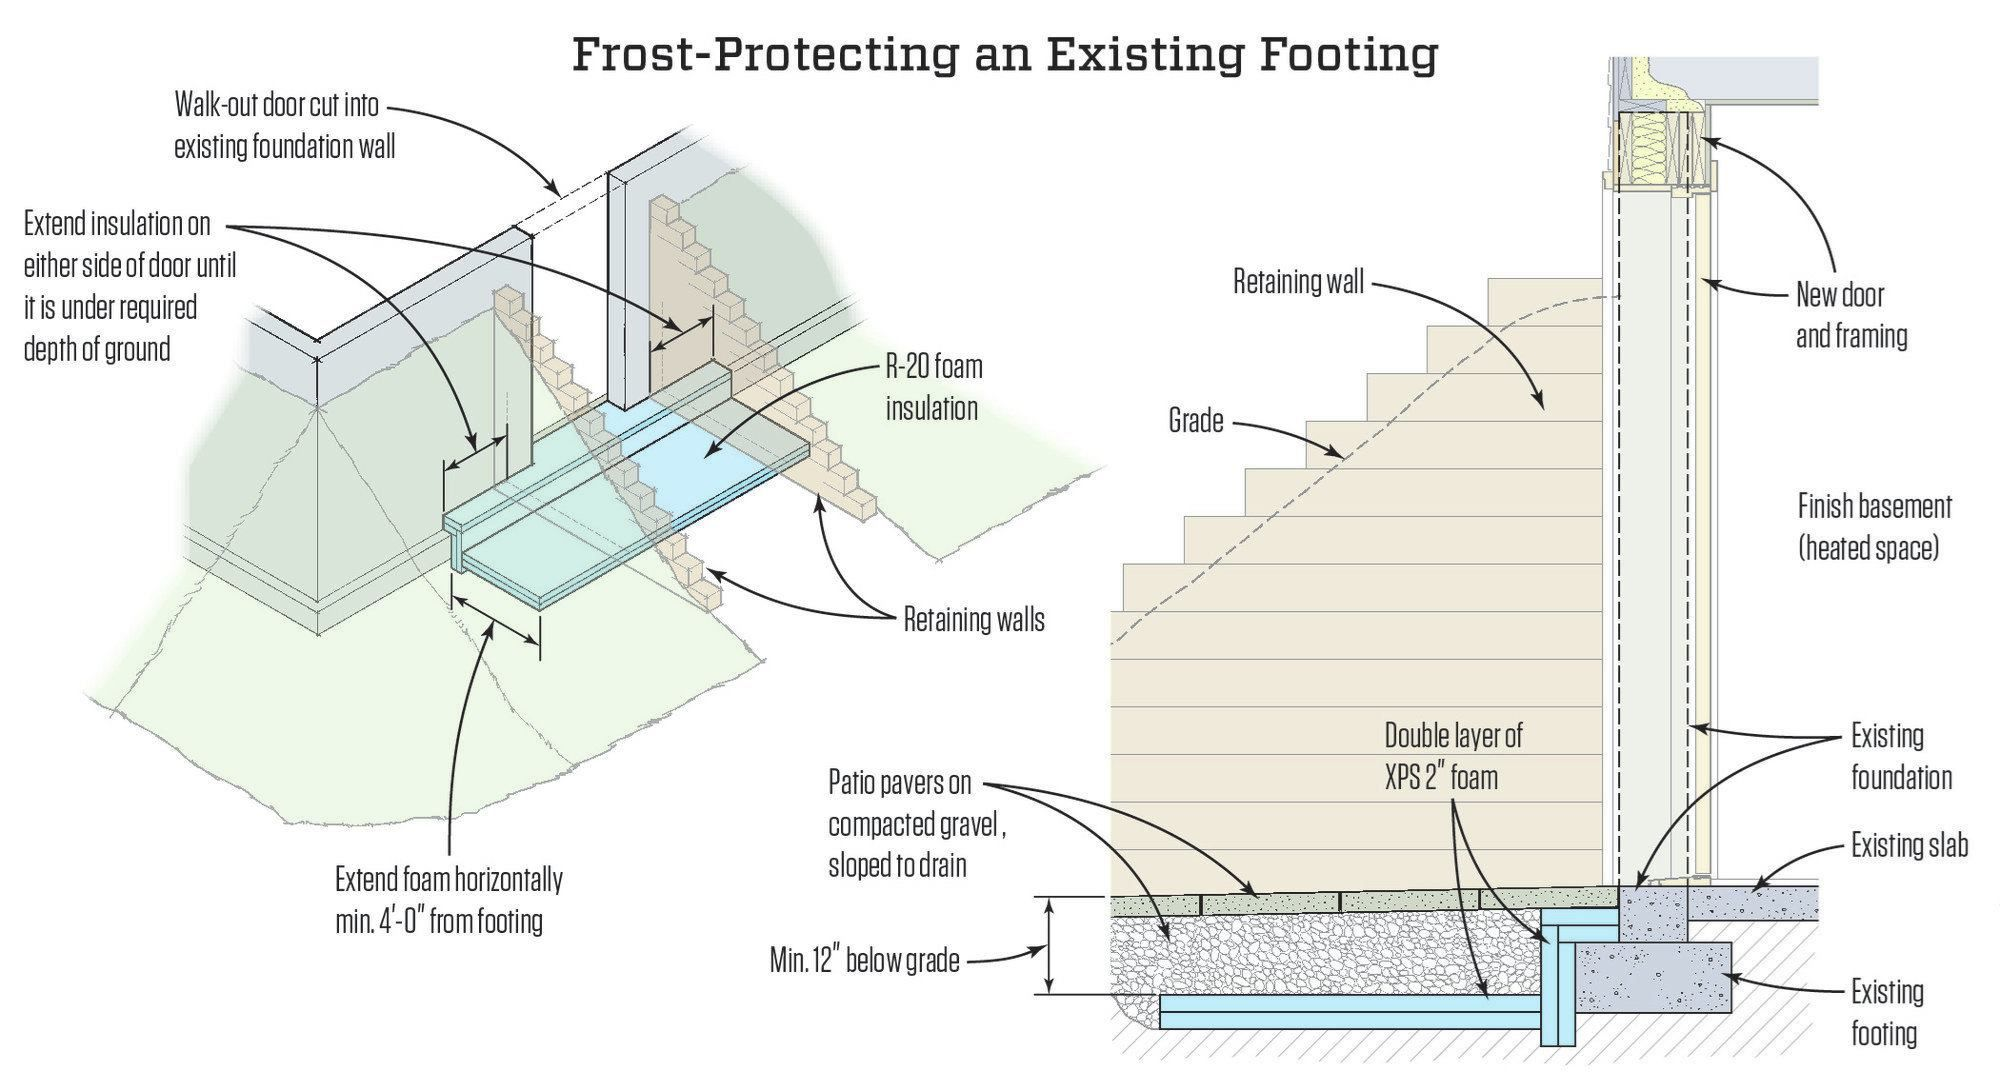 How Do You Protect The Footing And Foundation From Frost In A Very Cold Climate That Has A Doorway In The Fou Walkout Basement Image House Basement House Plans